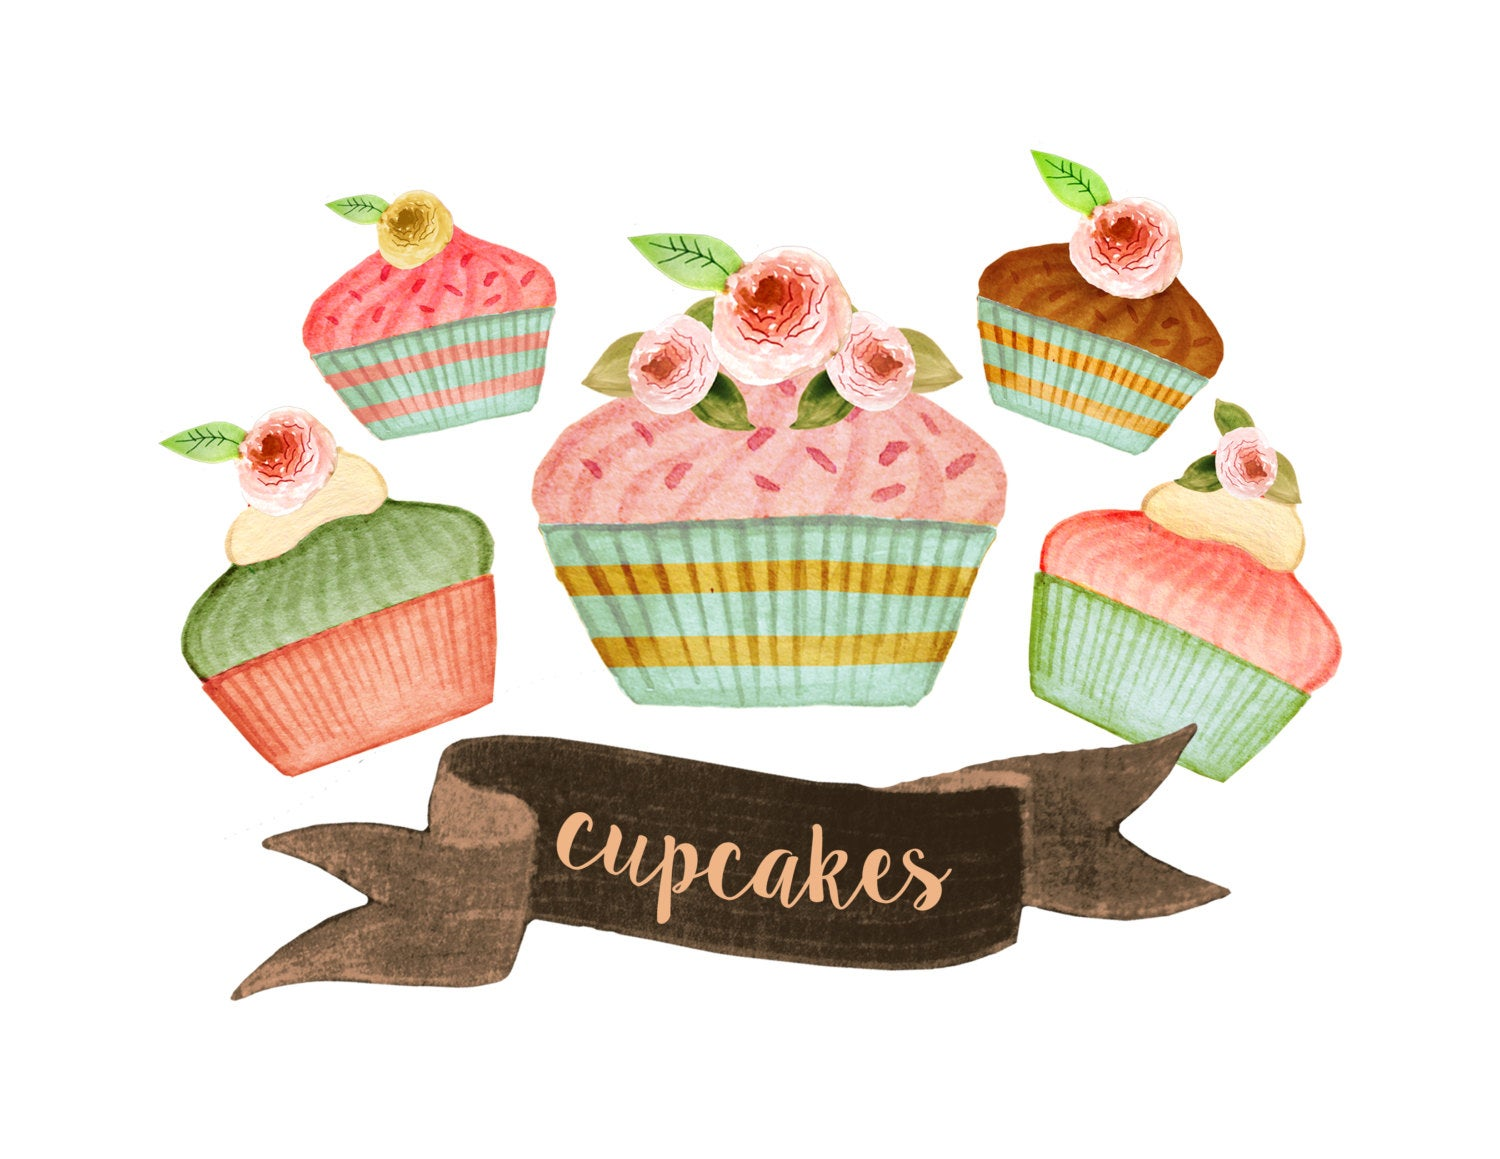 Cupcake tea party cakes. Baked goods clipart bakery